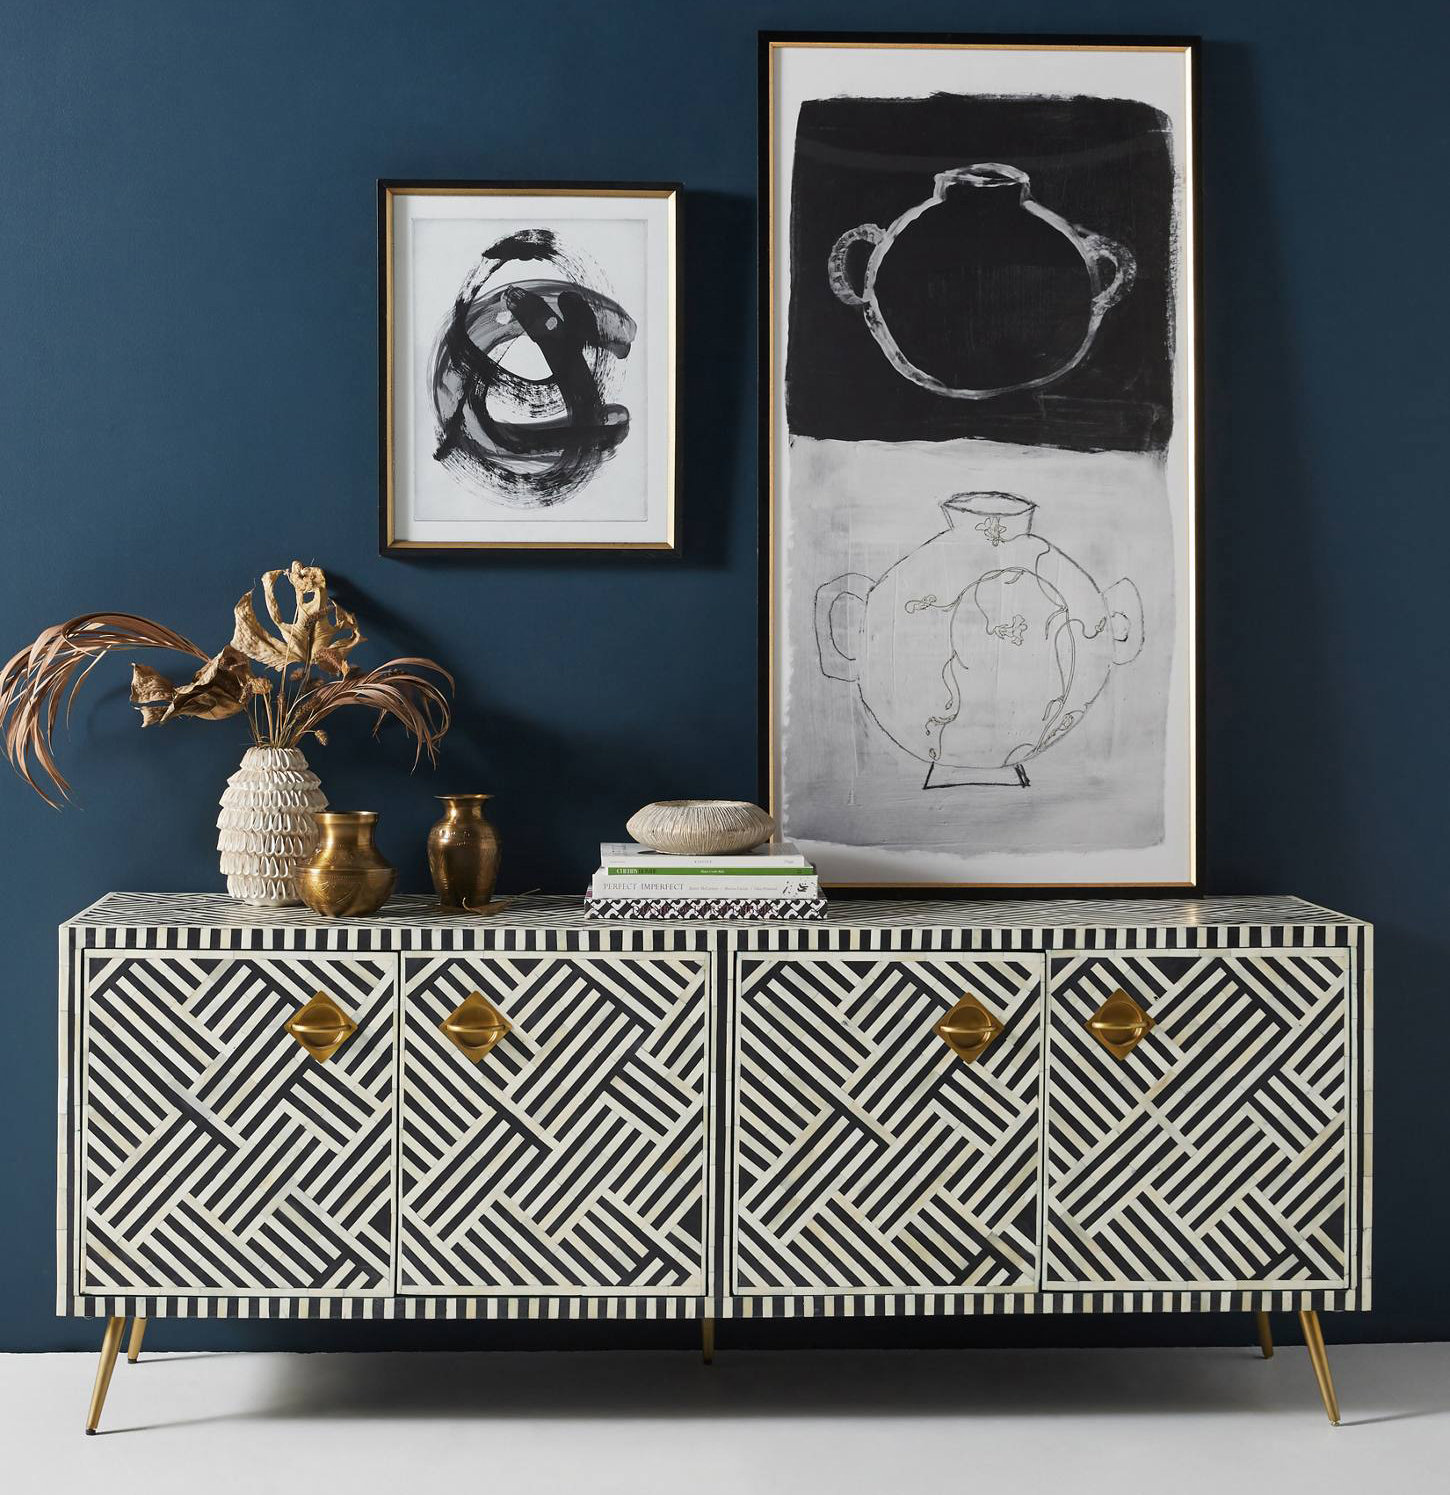 7 Best Places to Shop for Home Decor If You're NOT a Minimalist